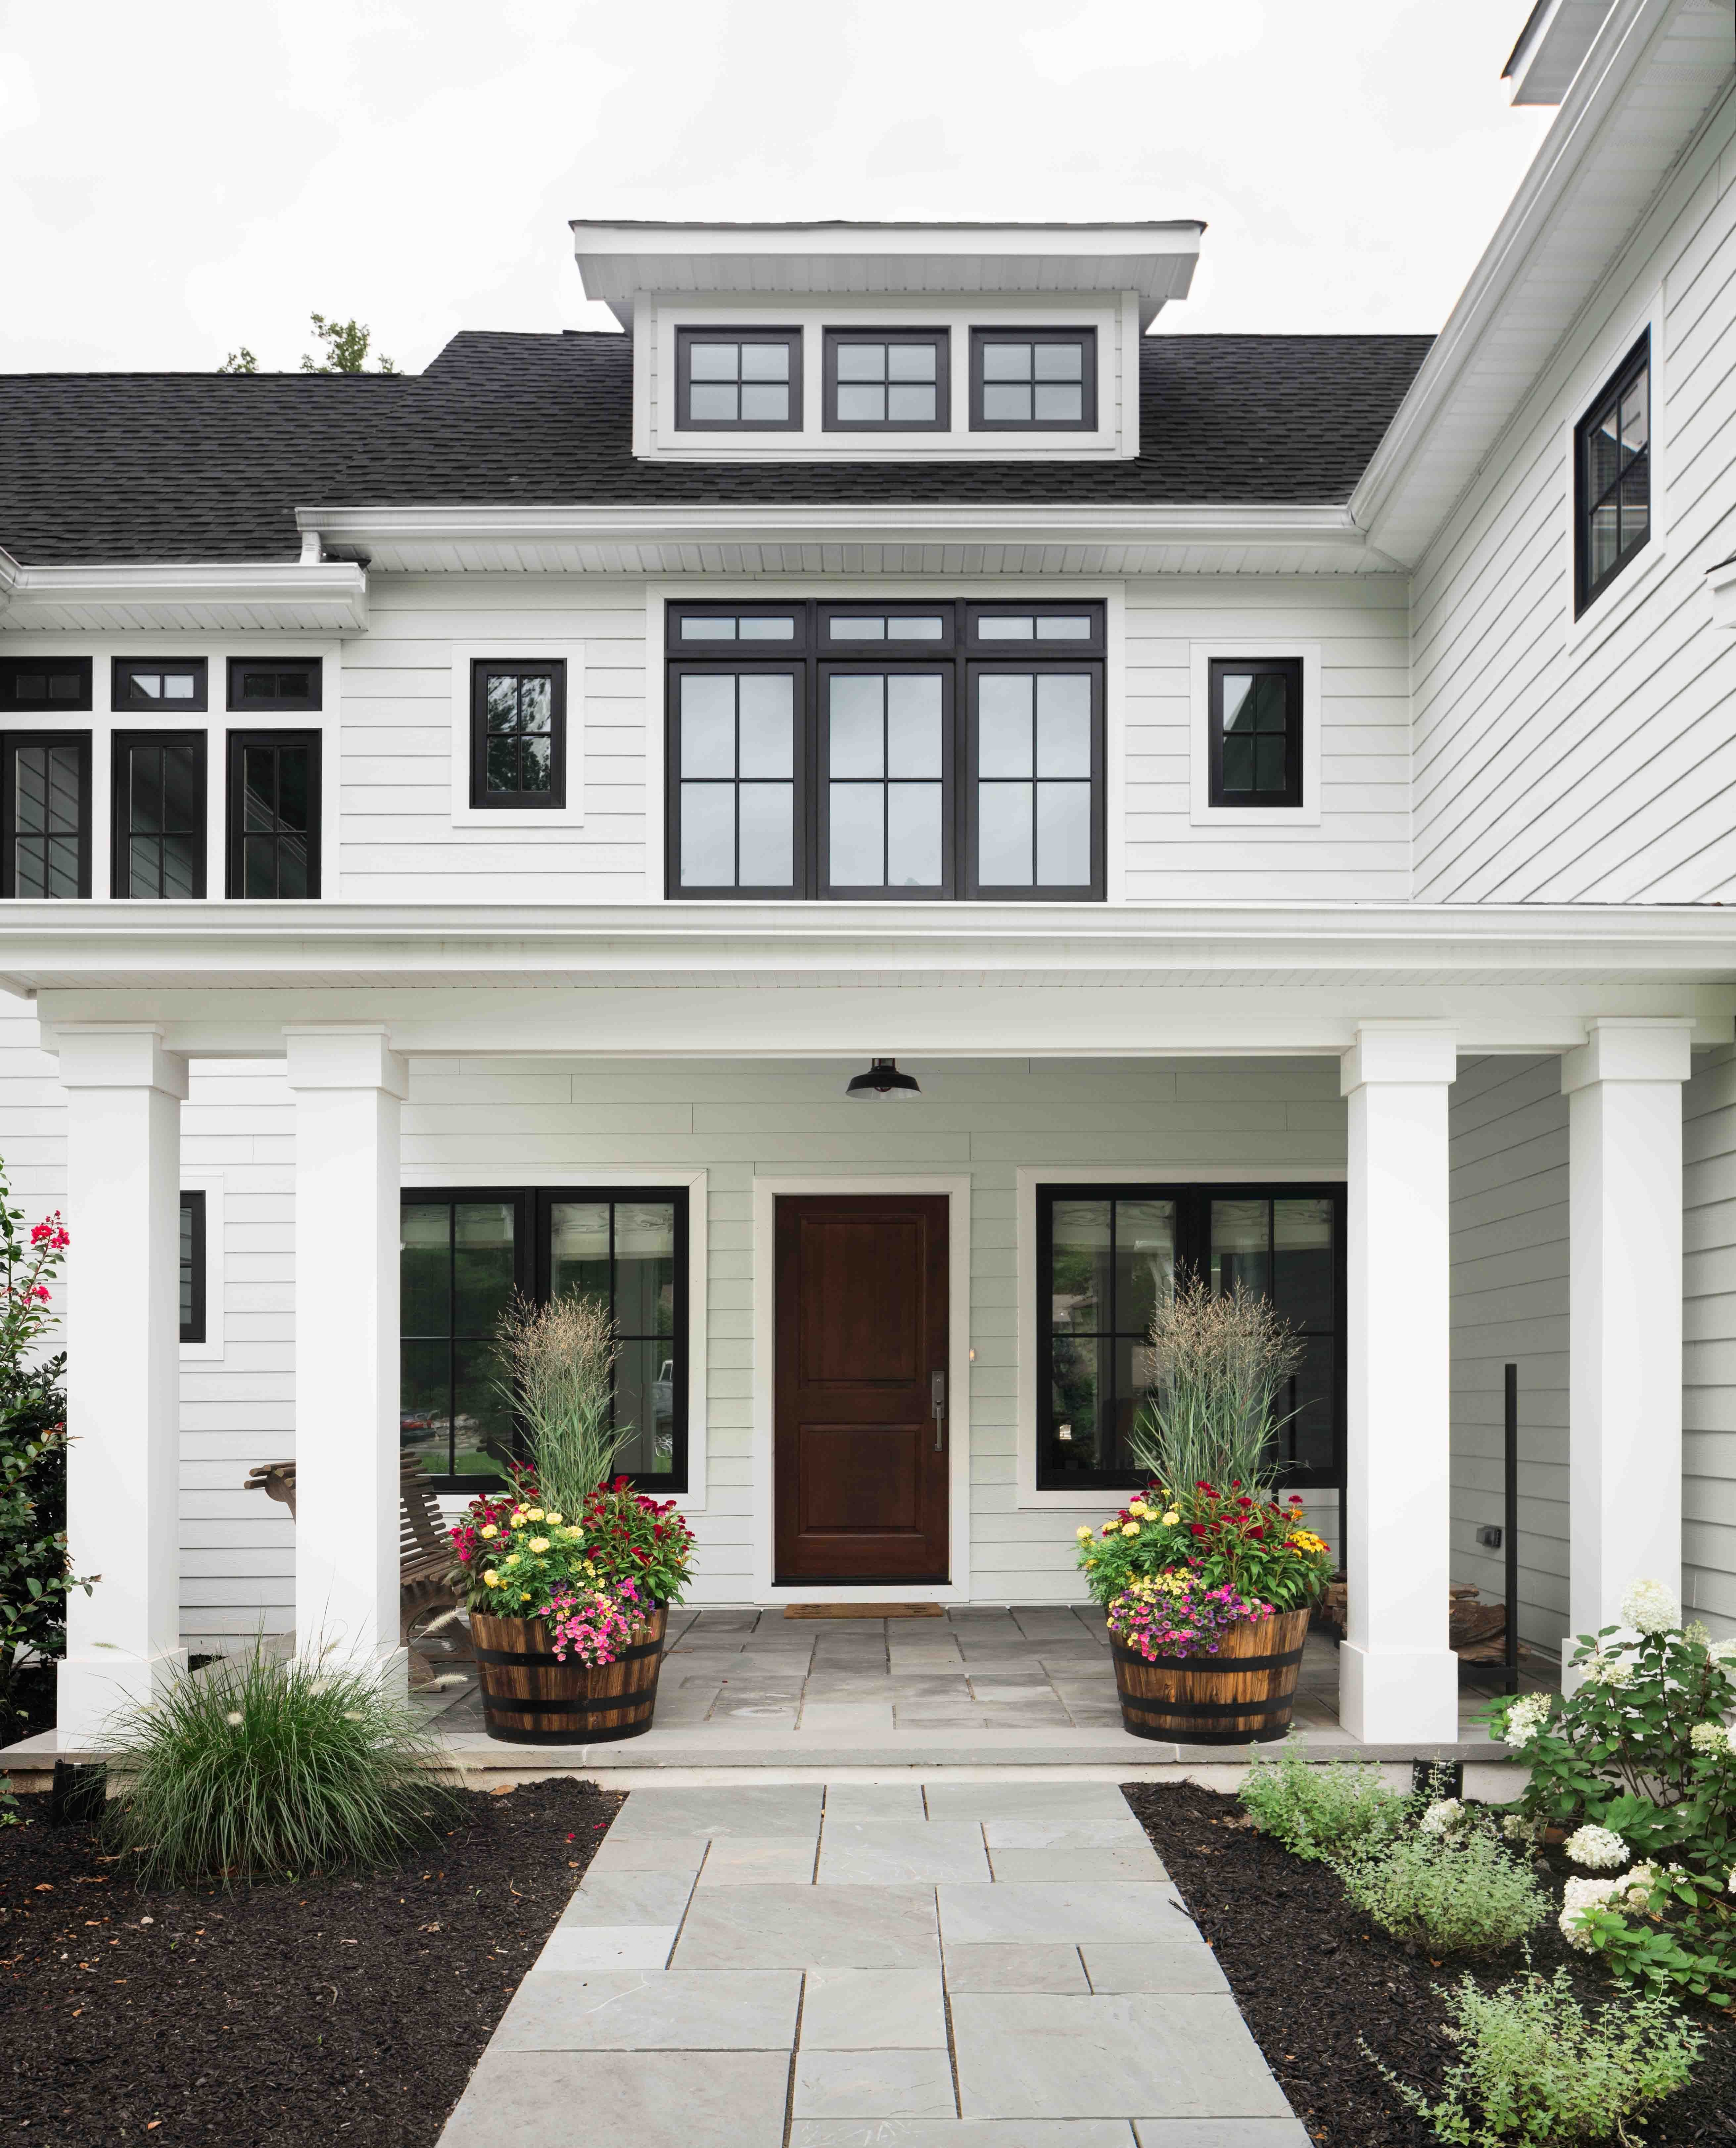 Z architects residential architecture exterior front yard geometry windows gable home entry curb appeal porch modern farmhouse